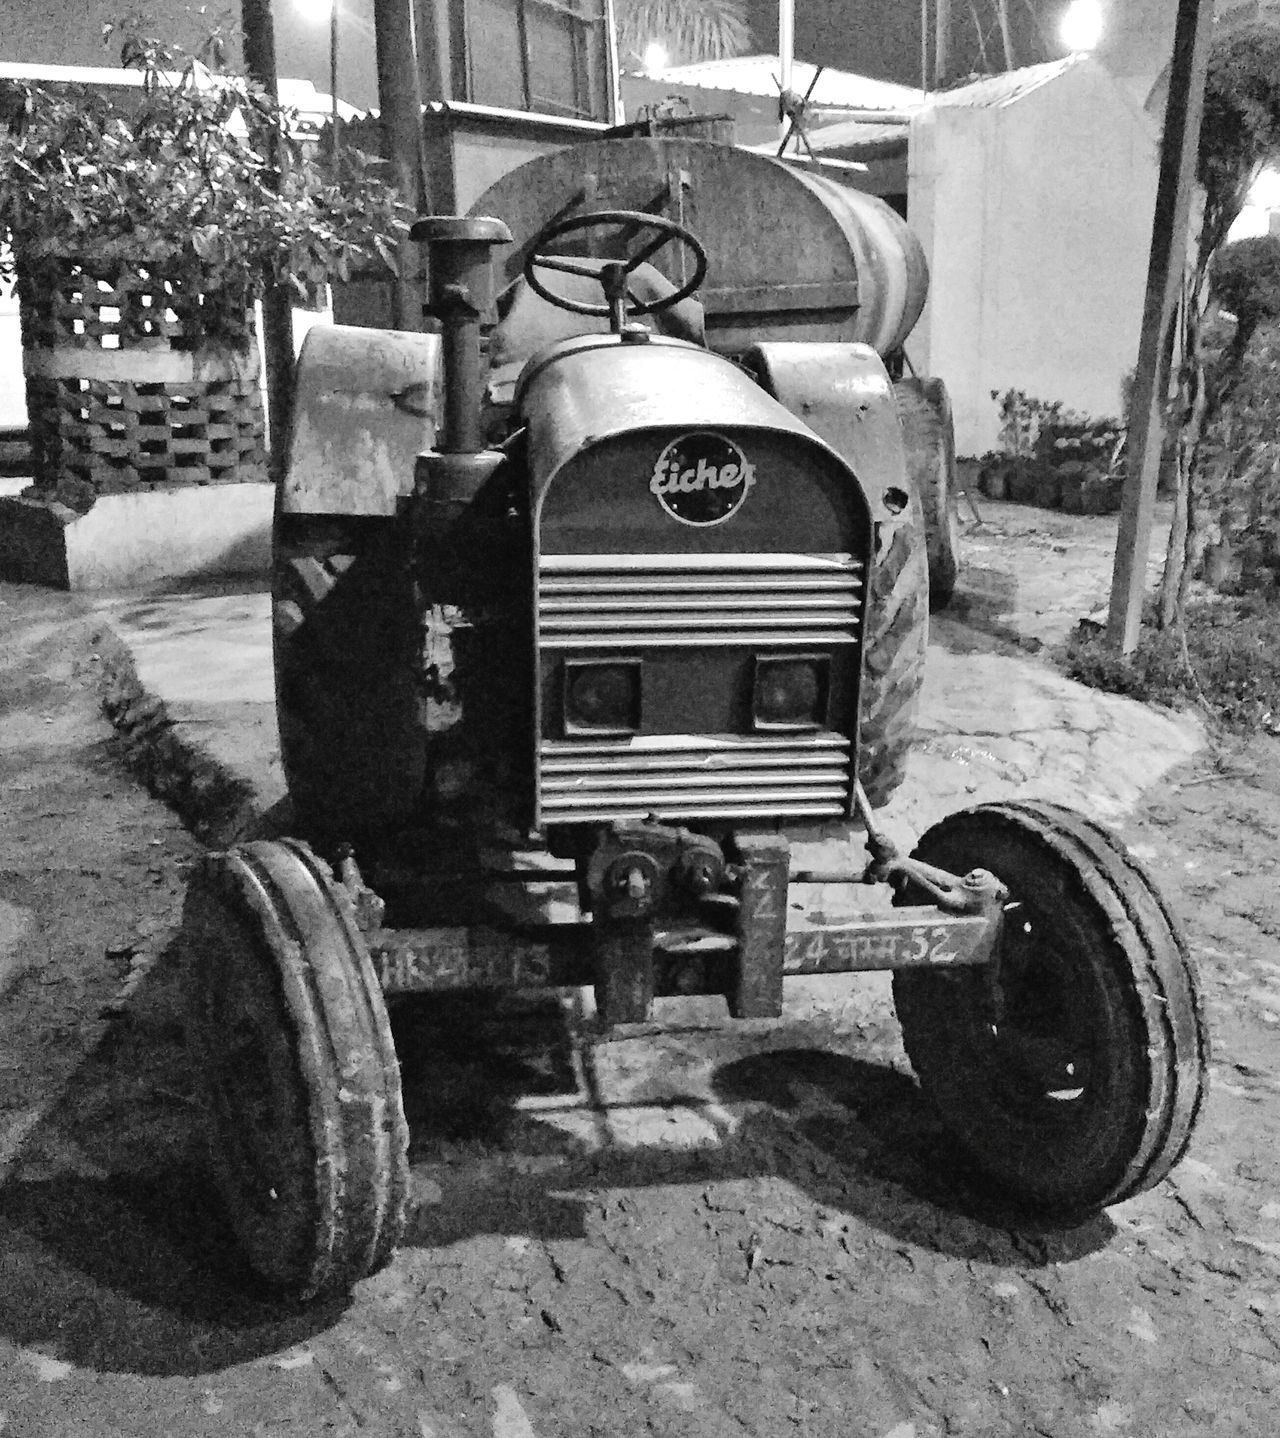 Tractor Land Vehicle Outdoors Tractor Blackandwhite Blackandwhite Photography Nightphotography Farmers Village Life India Roadside Watertank EyeEm Best Shots EyeEm Best Shots - Black + White EyeEm Best Shots - The Streets EyeEm